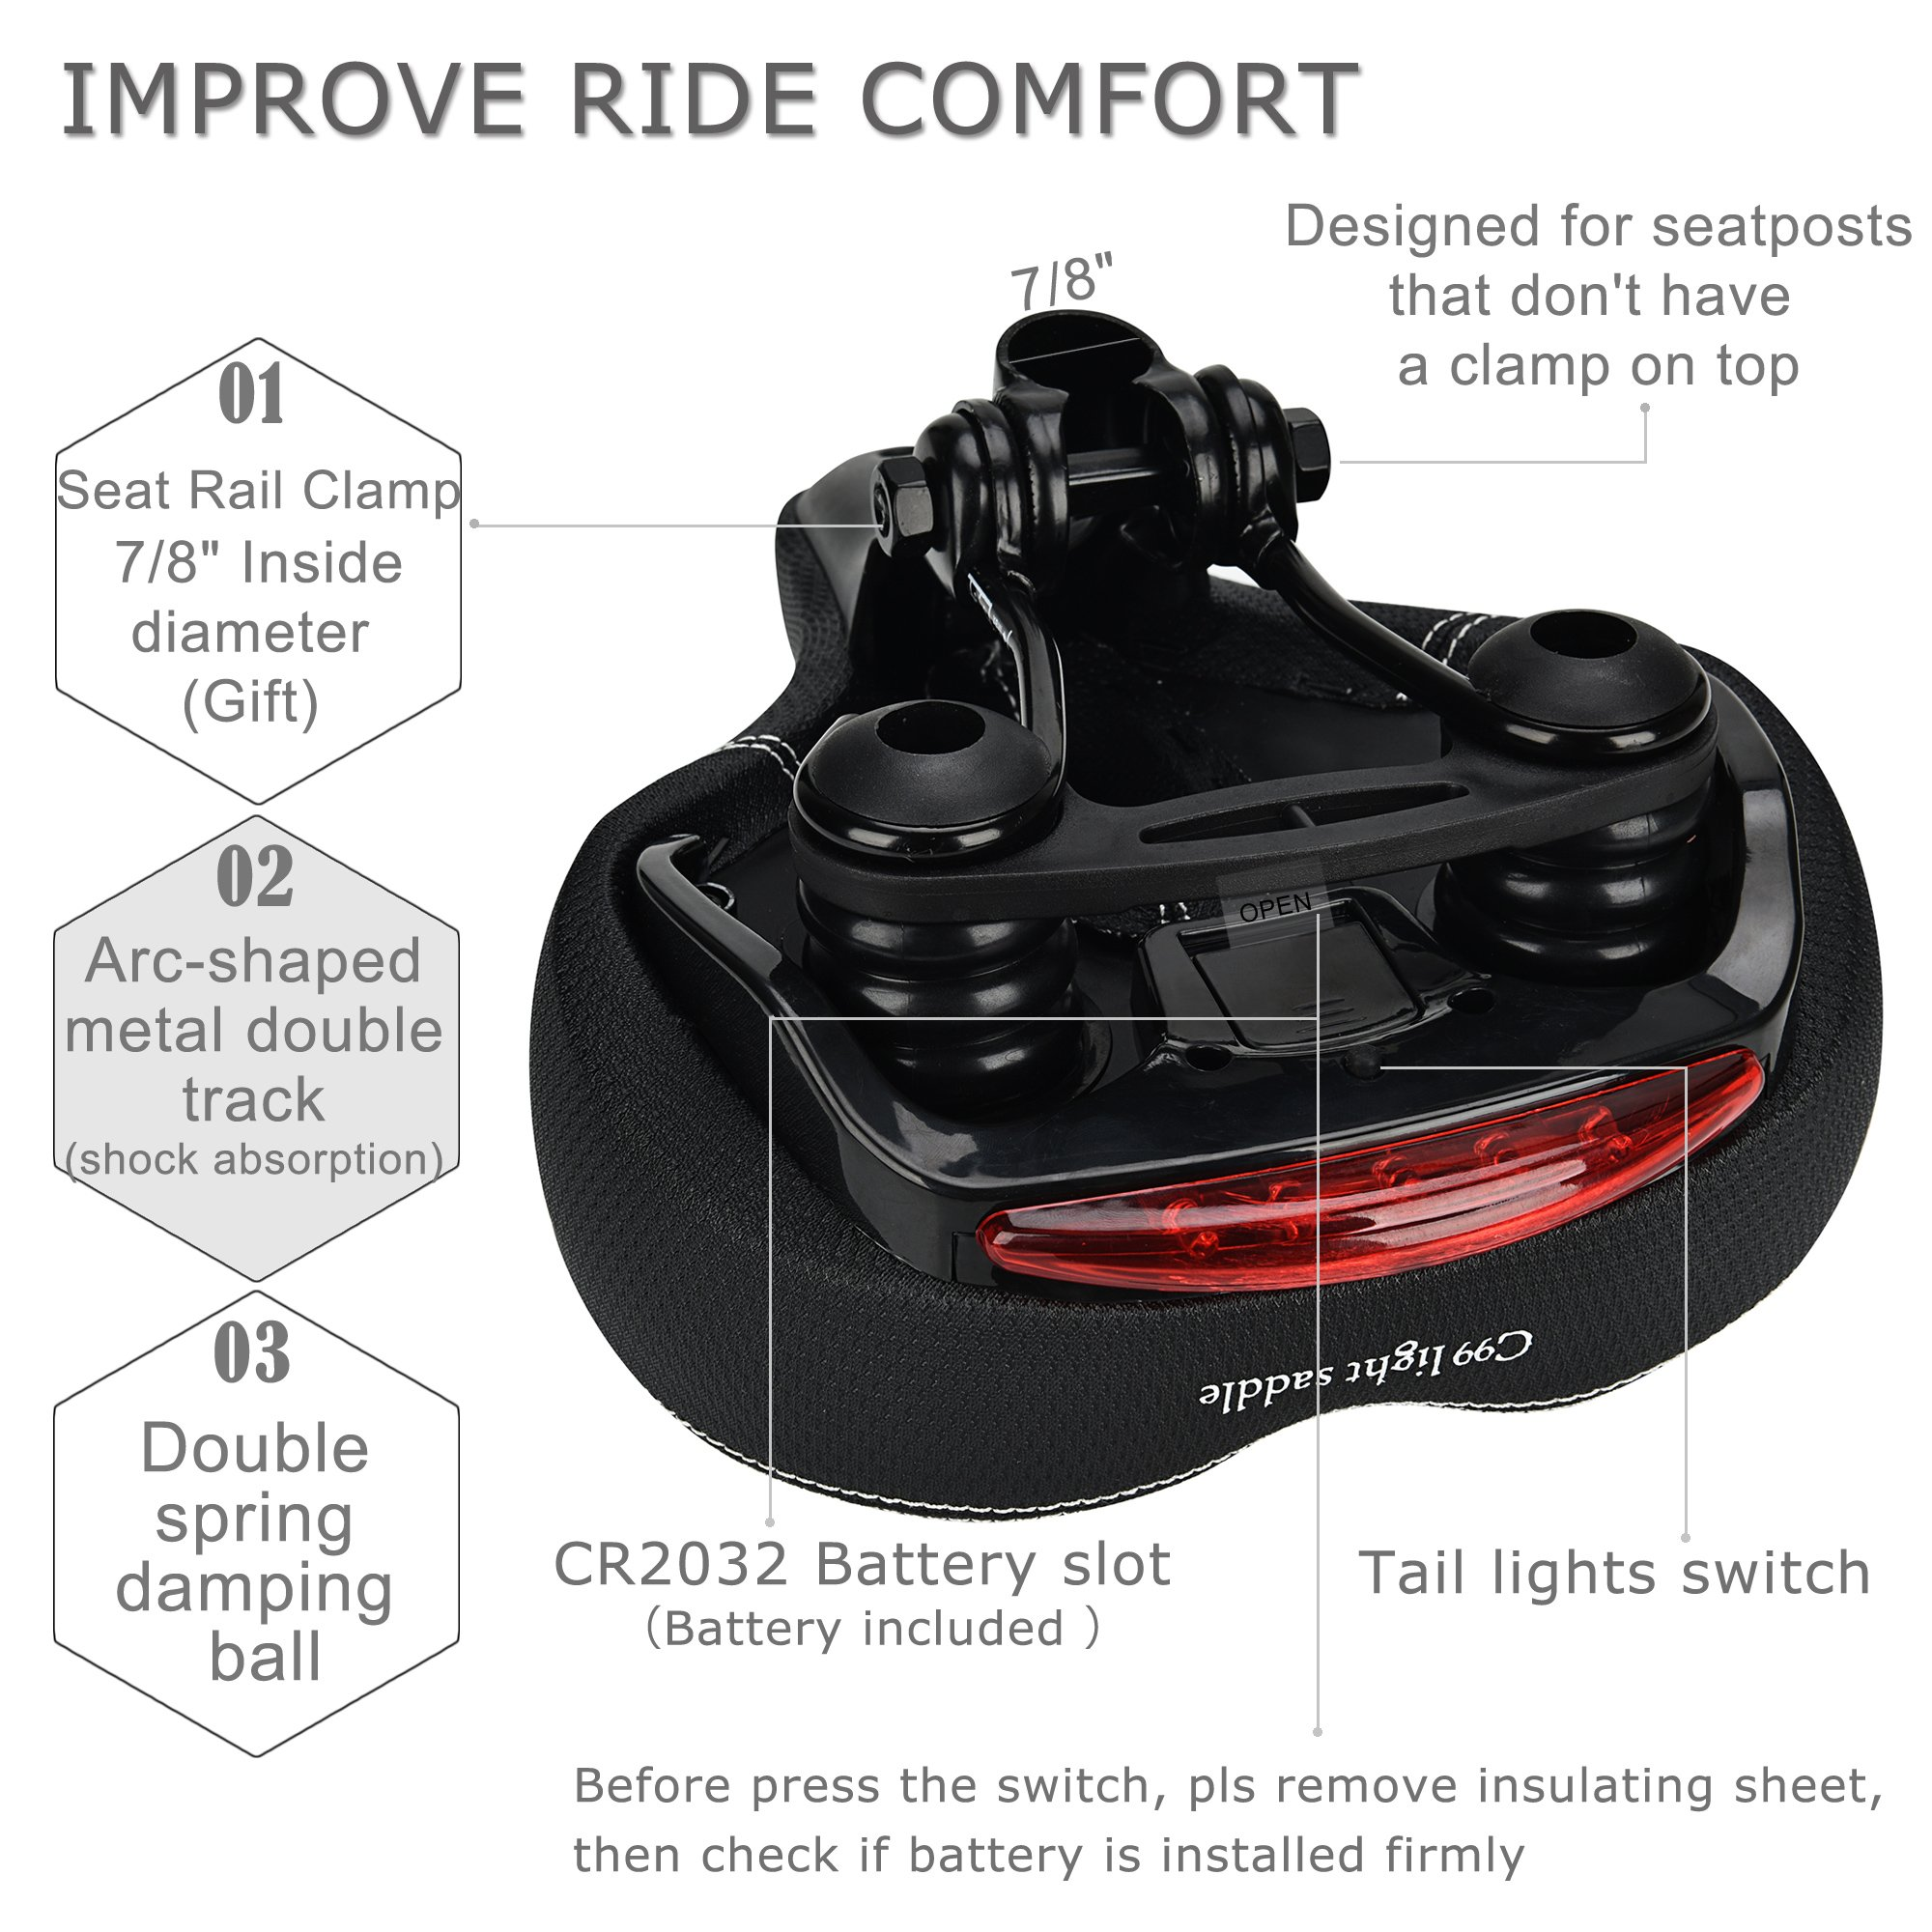 DAWAY Comfortable Men Women Bike Seat C99 Memory Foam Padded Leather Wide Bicycle Saddle Cushion with Taillight, Waterproof, Dual Spring Designed, Soft, Breathable, Fit Most Bikes, 1 Year Warranty by DAWAY (Image #5)